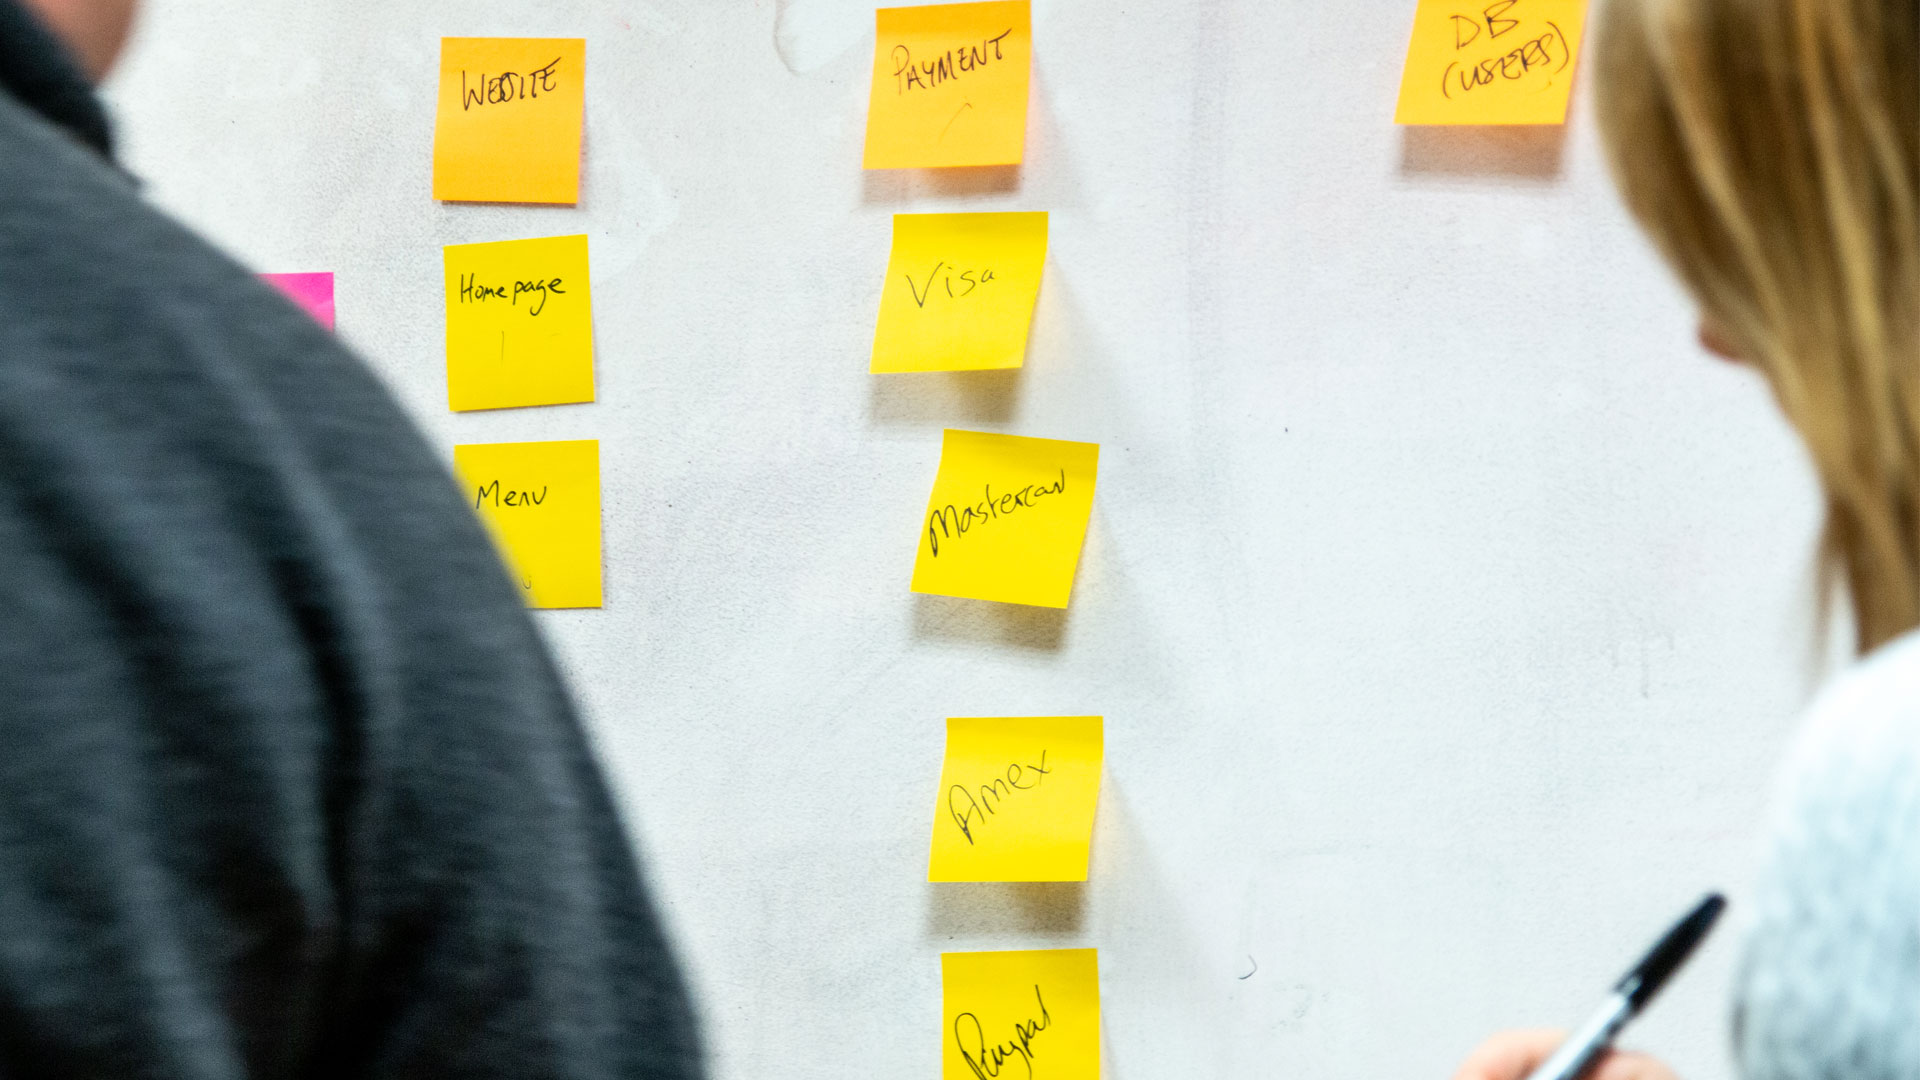 Two people adding post-it notes to a wall showing different payment options